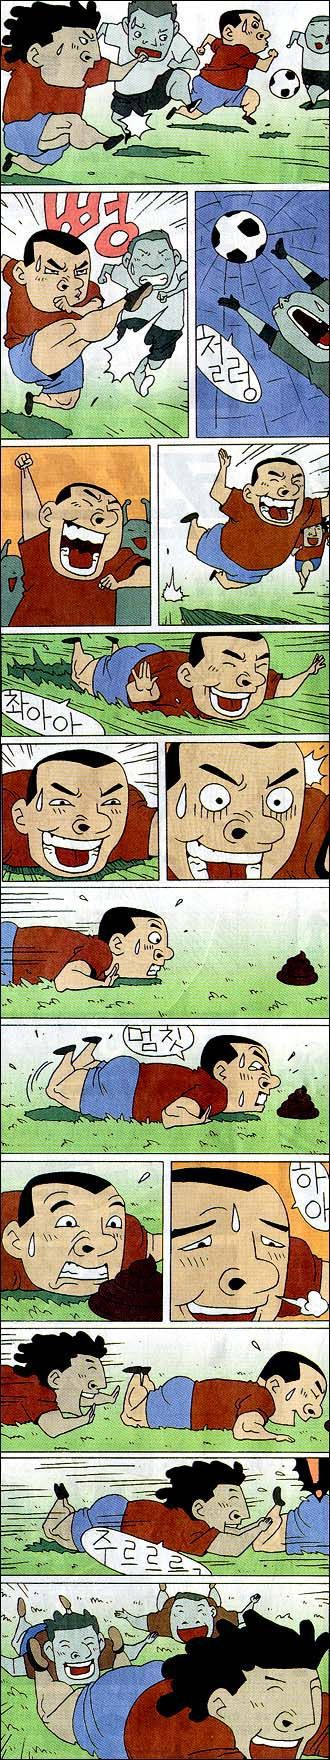 Funny Korean Comic Strips (41 pics)